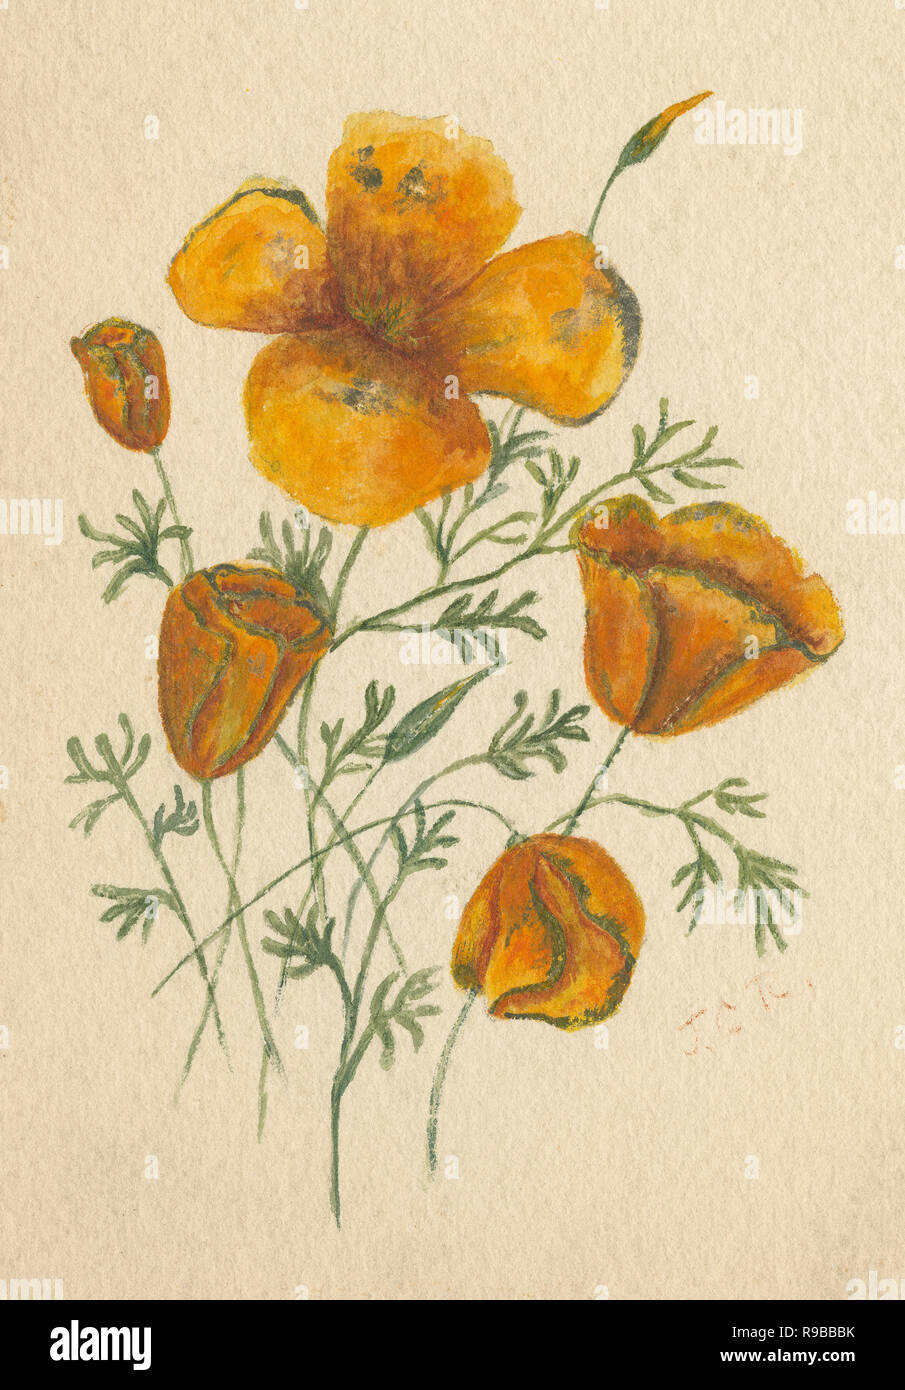 C1890 aquarelle antique de pavot de Californie (Eschscholzia californica). SOURCE : TABLEAU ORIGINAL Photo Stock